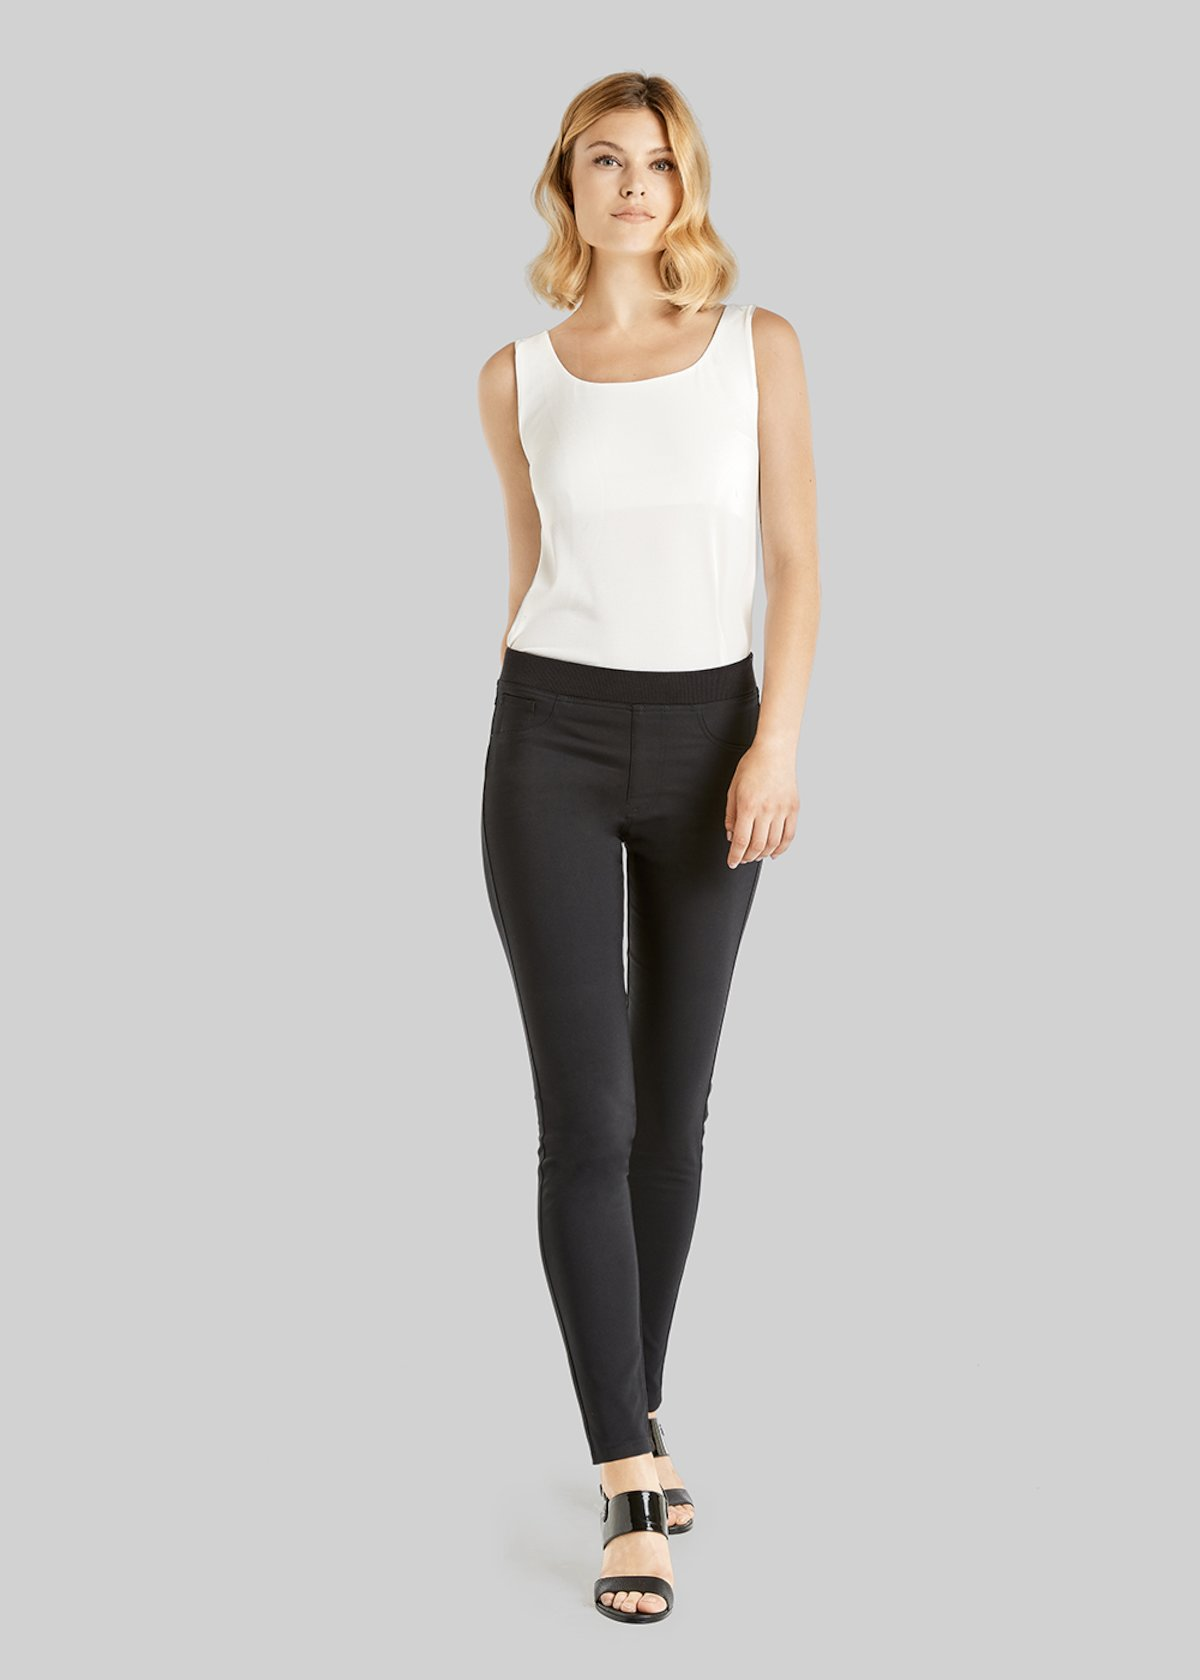 Kelly jeggings trousers technical fabric - Black - Woman - Category image